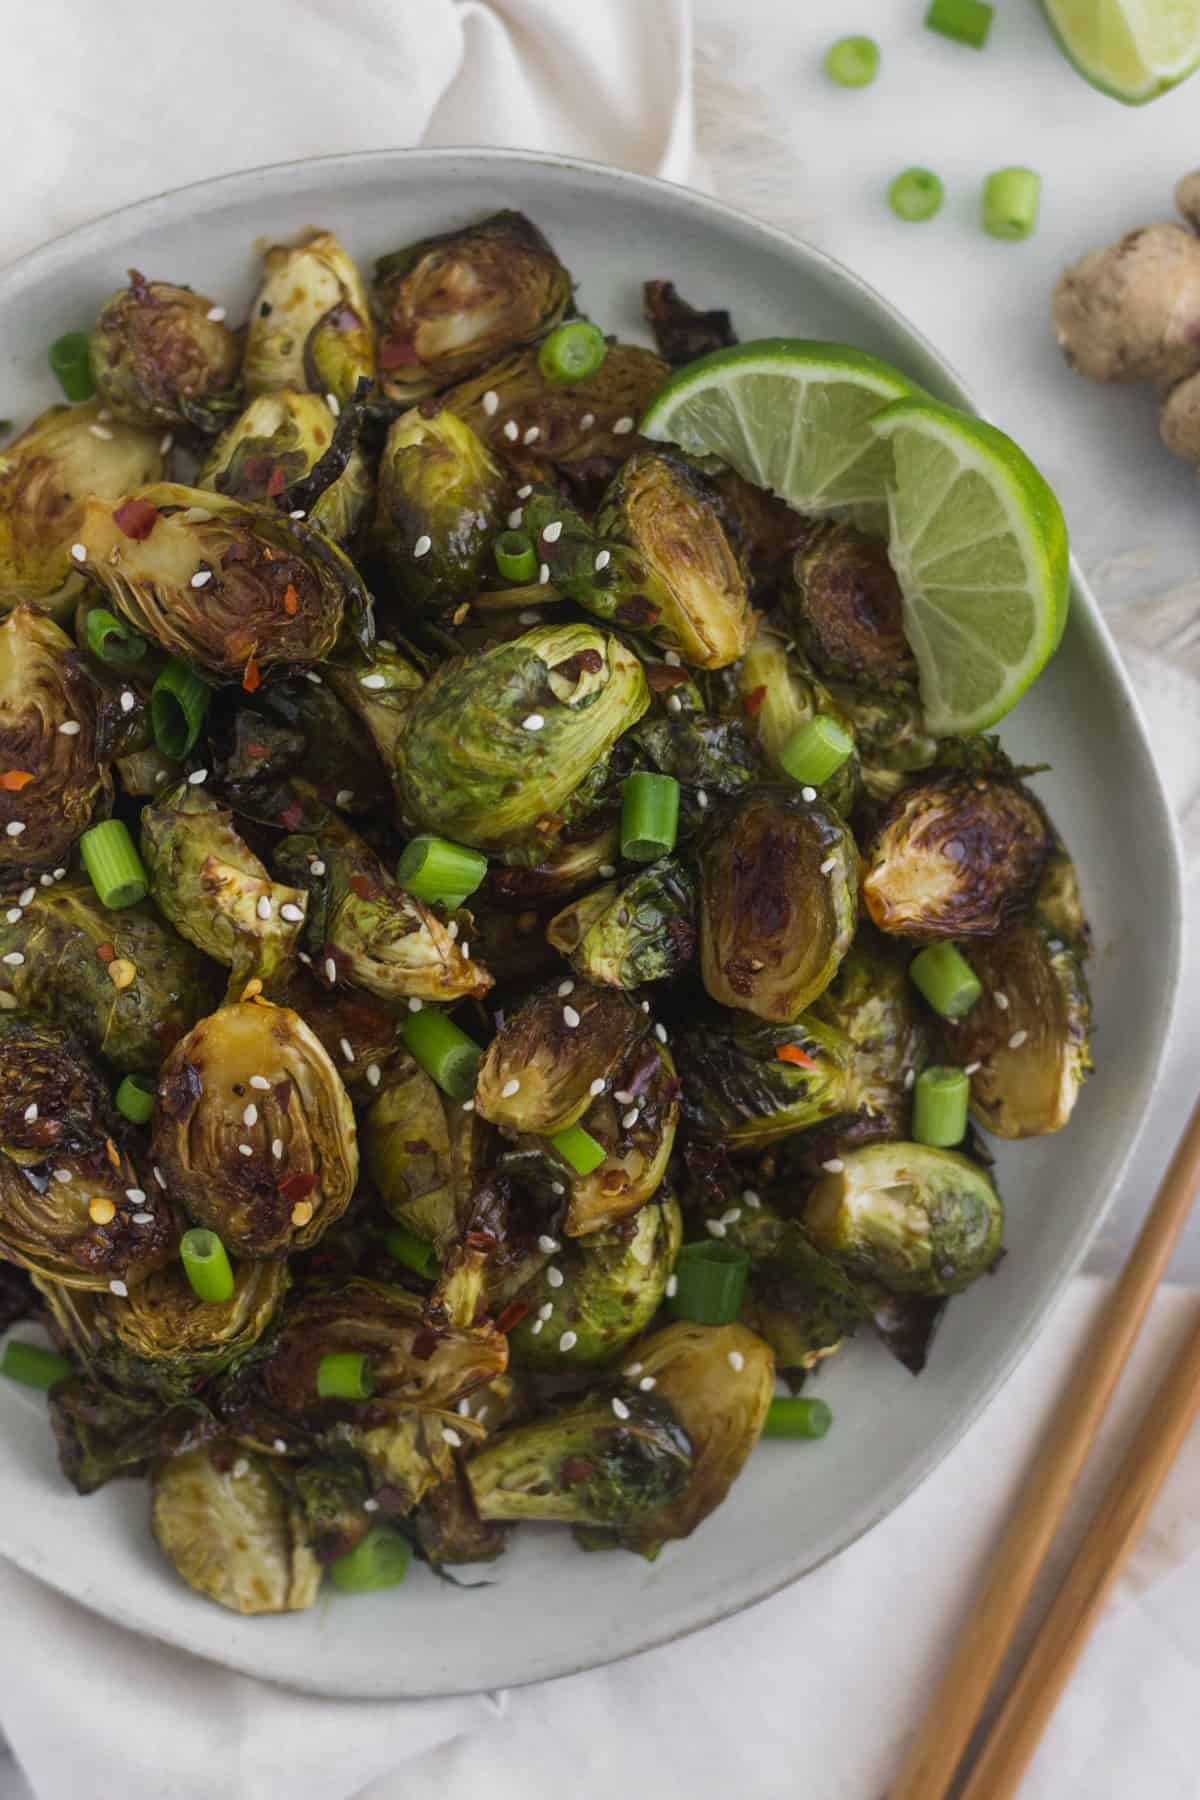 Plate of miso glazed brussels sprouts garnished with green onions, sesame seeds, and lime wedges